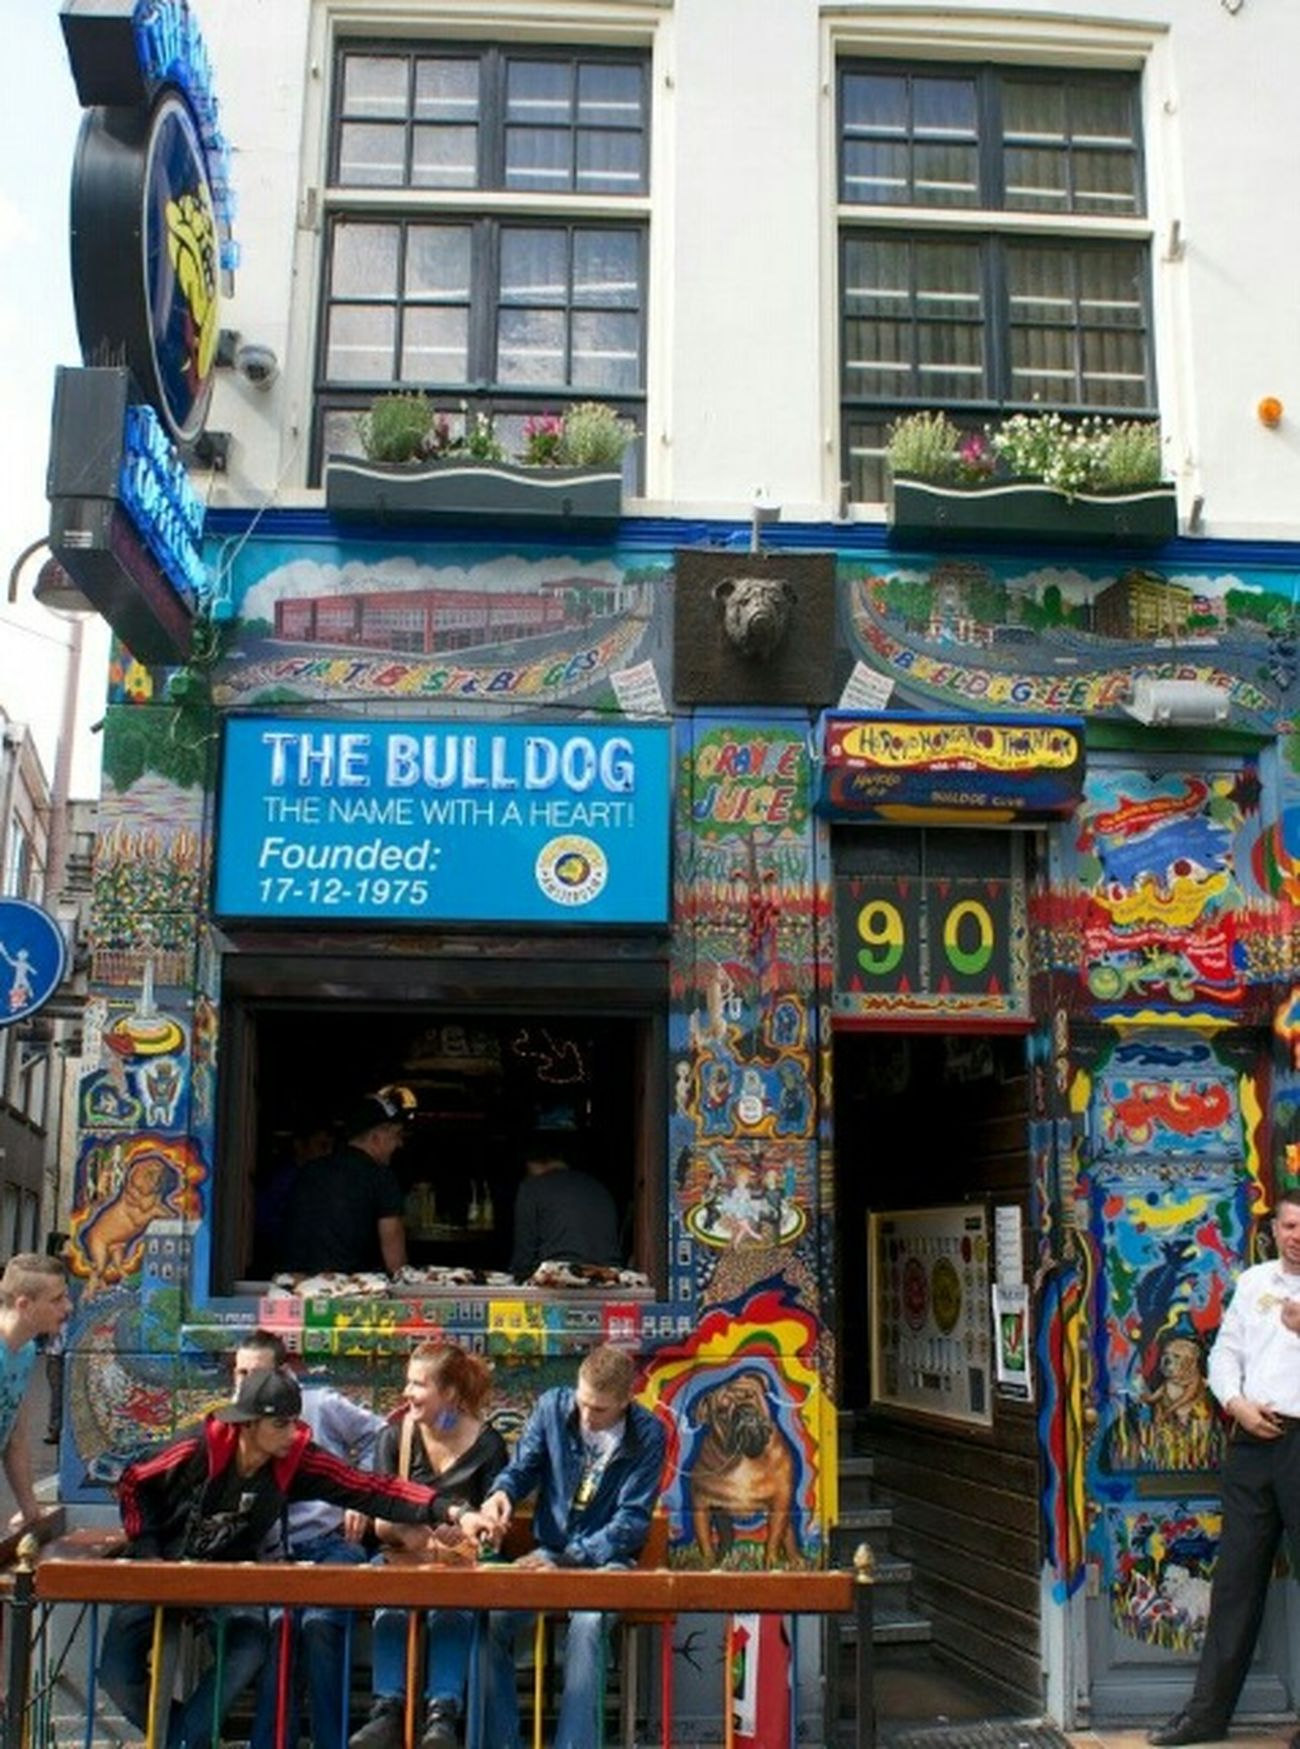 Amsterdam Coffeeshops Amsterdam Lovemycity Citylife Welcometoamsterdam Amsterdamcity I Love Amsterdam Coffeshop Coffeeshops  The Bulldog Coffeshop